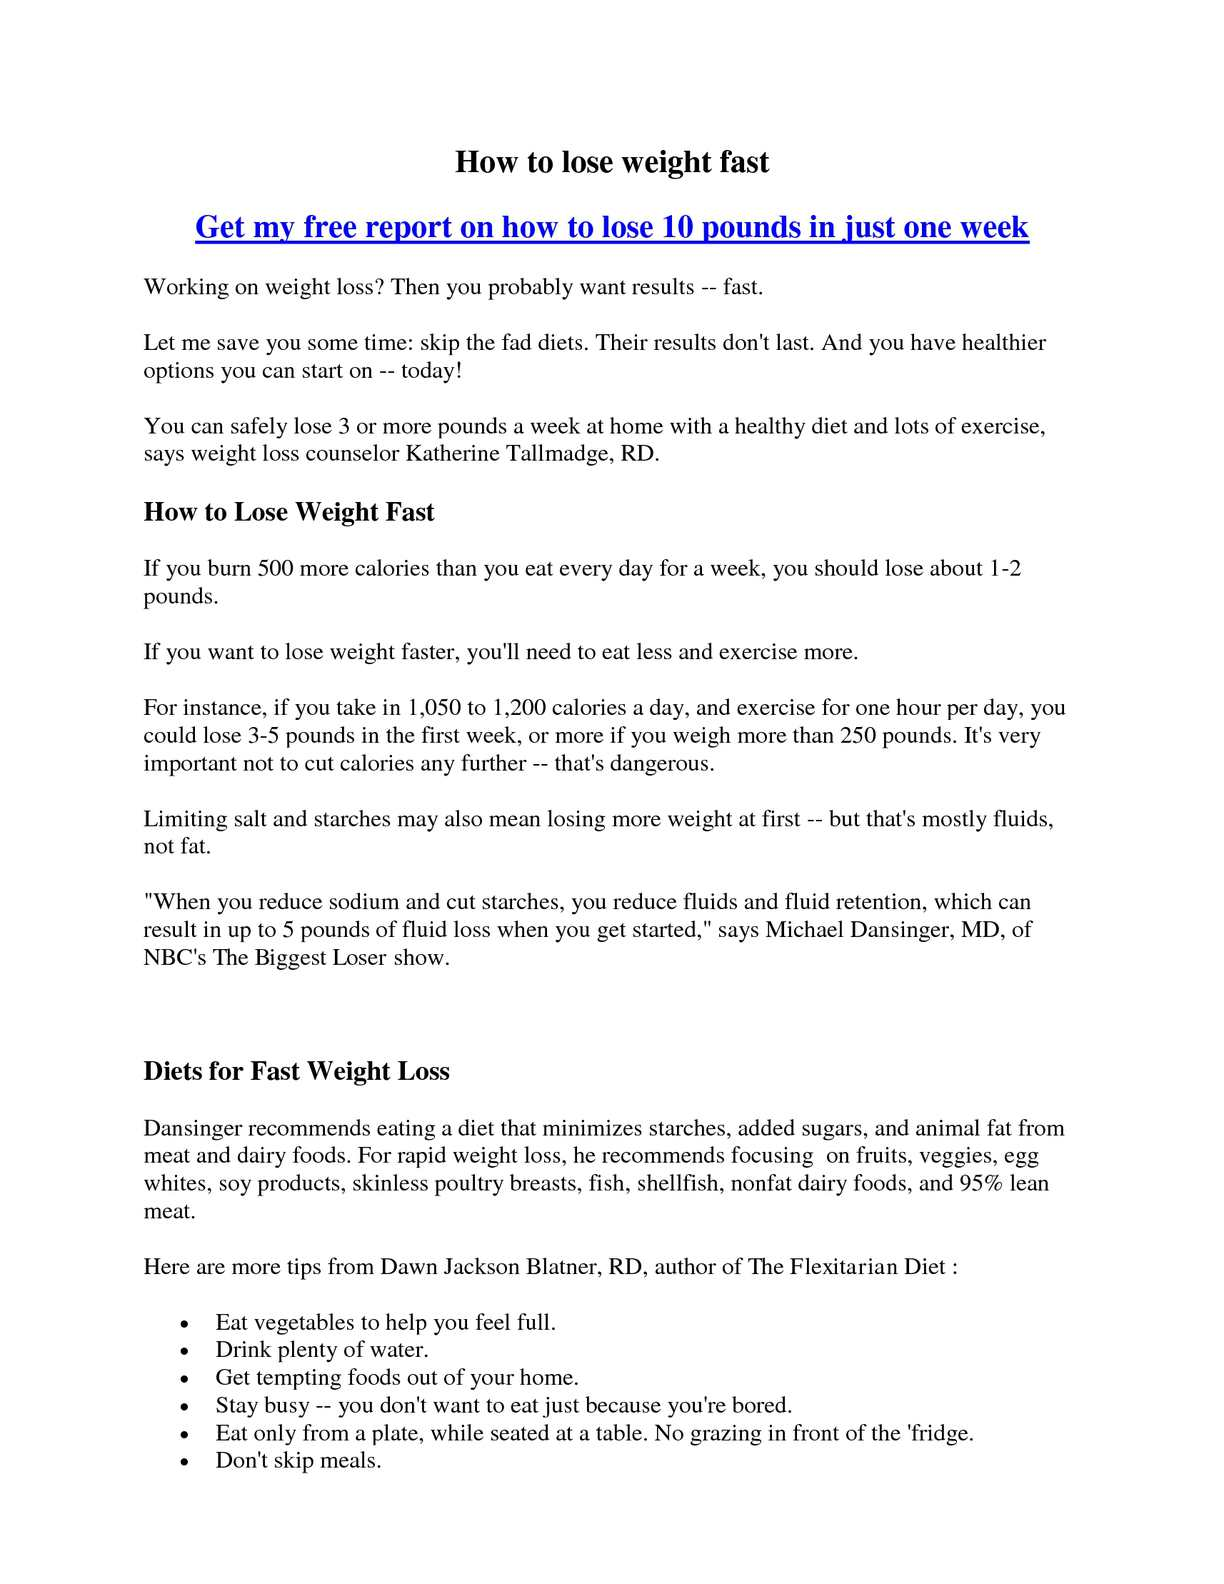 Diet Plan To Lose Weight Fast Calaméo 7 Day Diet Plan To Lose Weight Fast